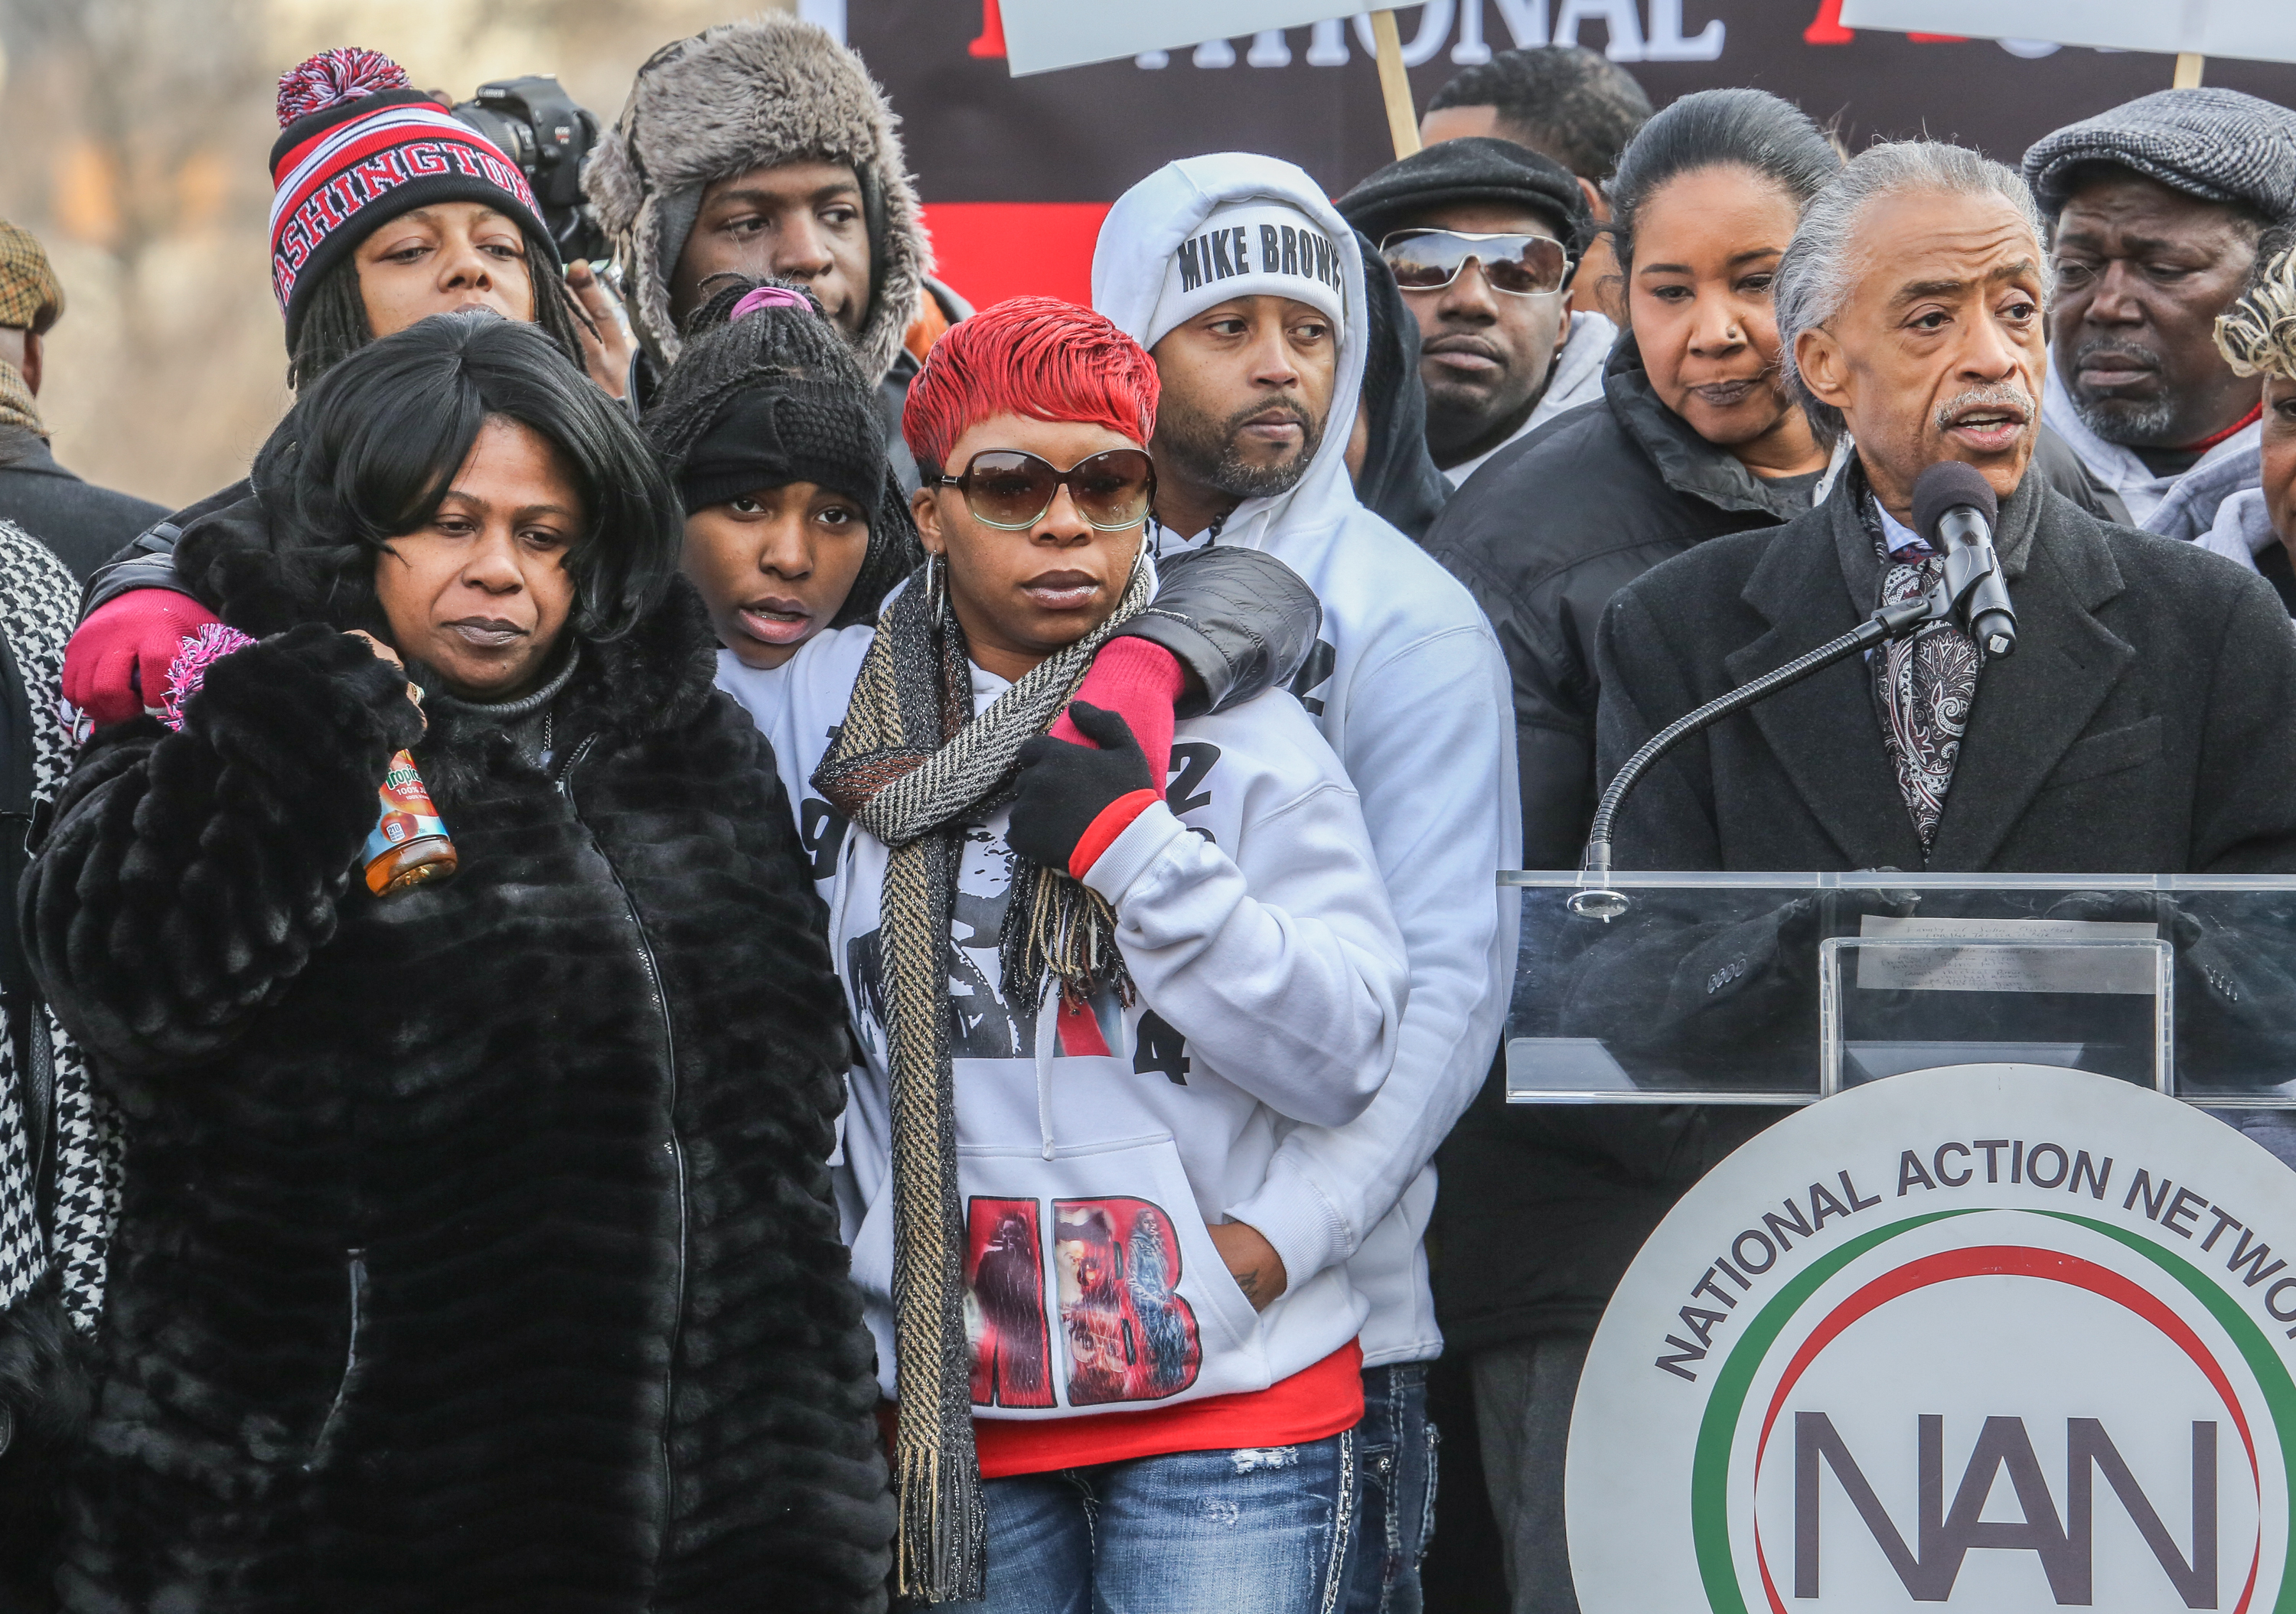 Samaria Rice (left), the mother of Tamir Rice, and Leslie McSpadden (right), the mother of Michael Brown, listen to Al Sharpton, at a march in Washington, D.C., on December 13, 2014.